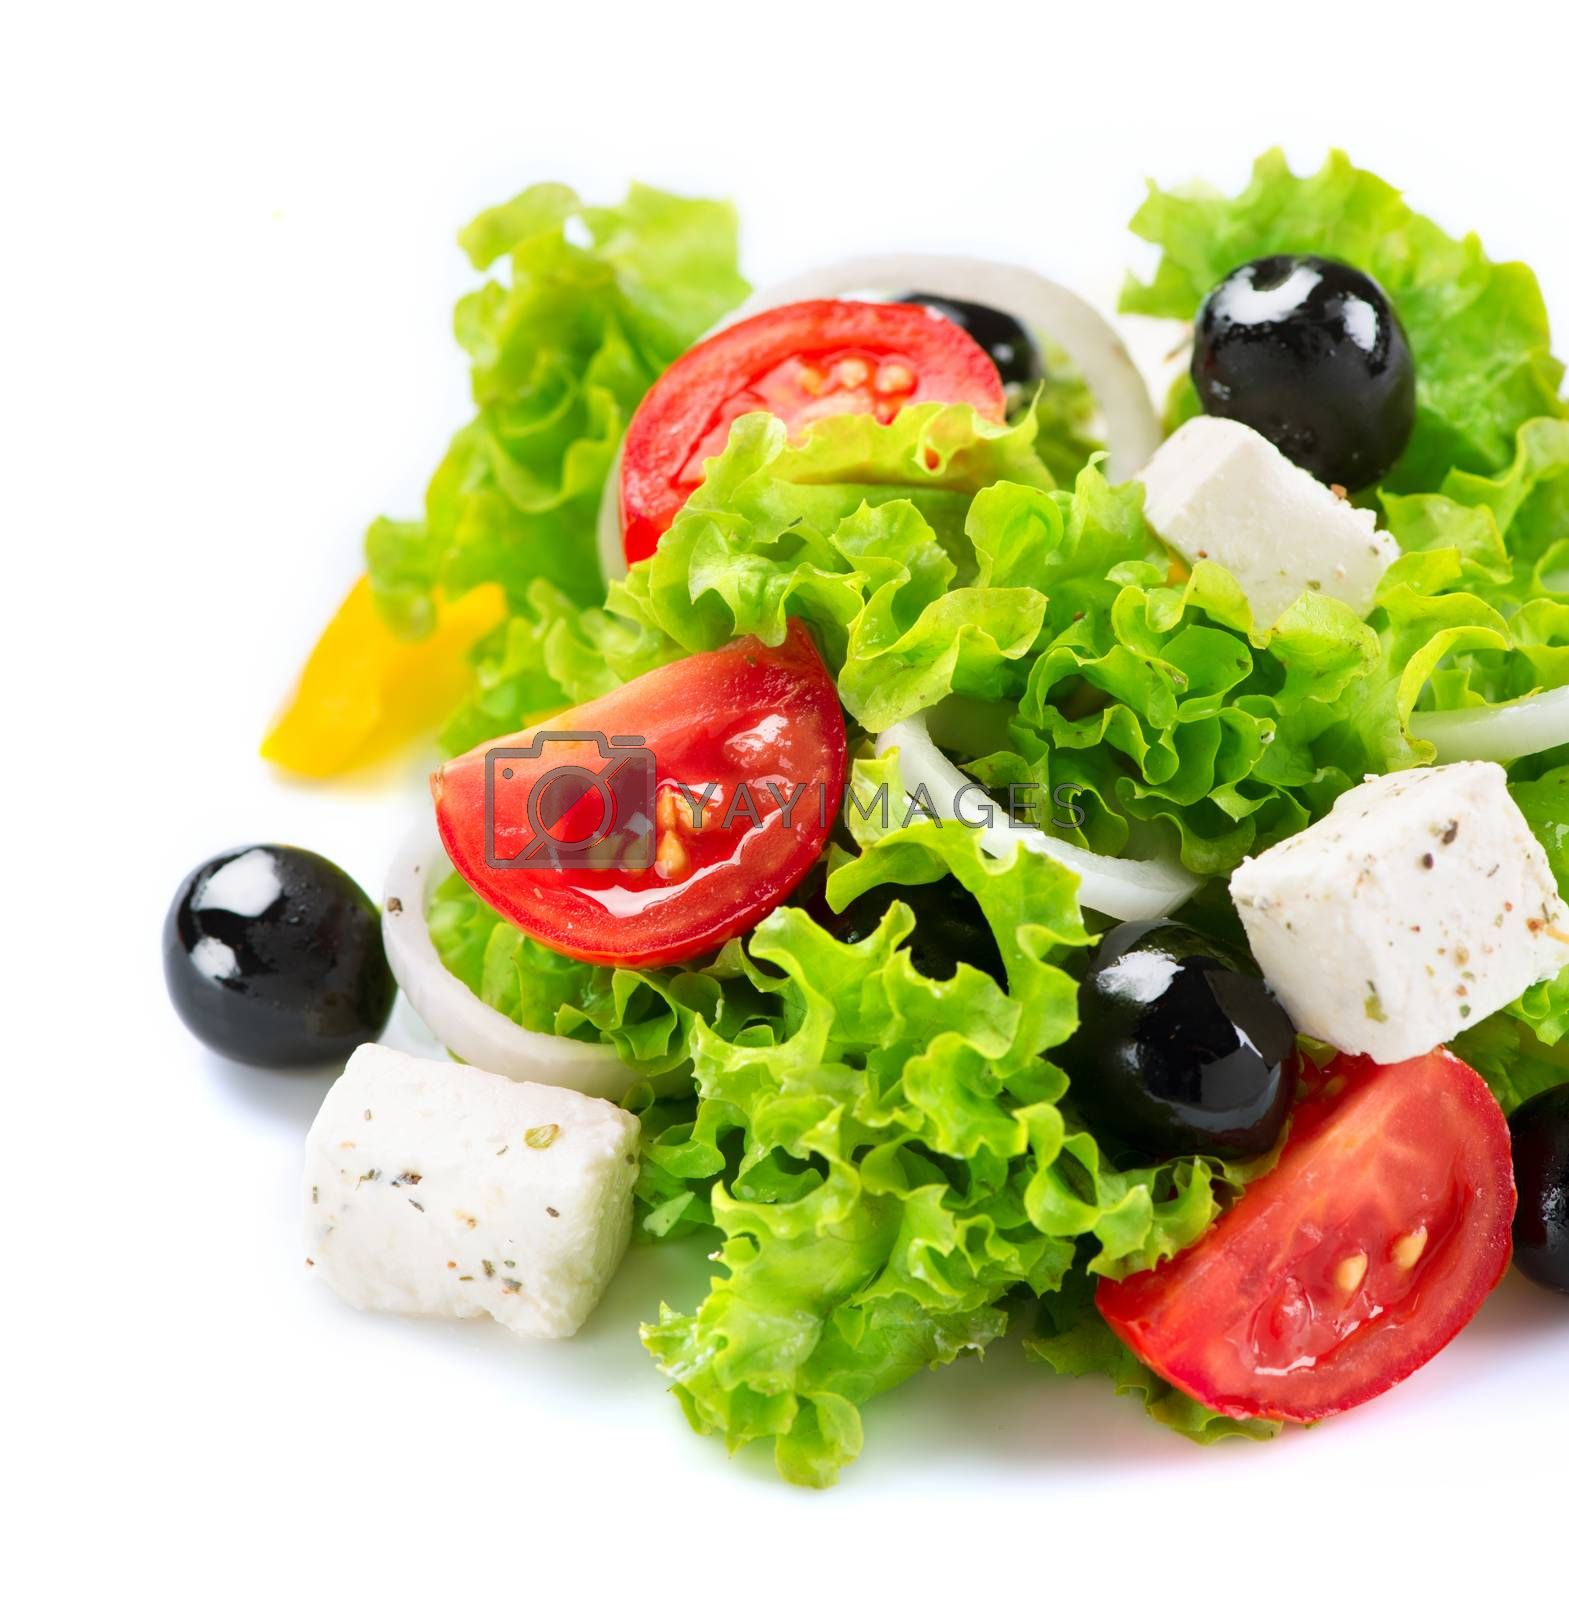 Mediterranean Salad. Greek Salad isolated on a White Background  by SubbotinaA